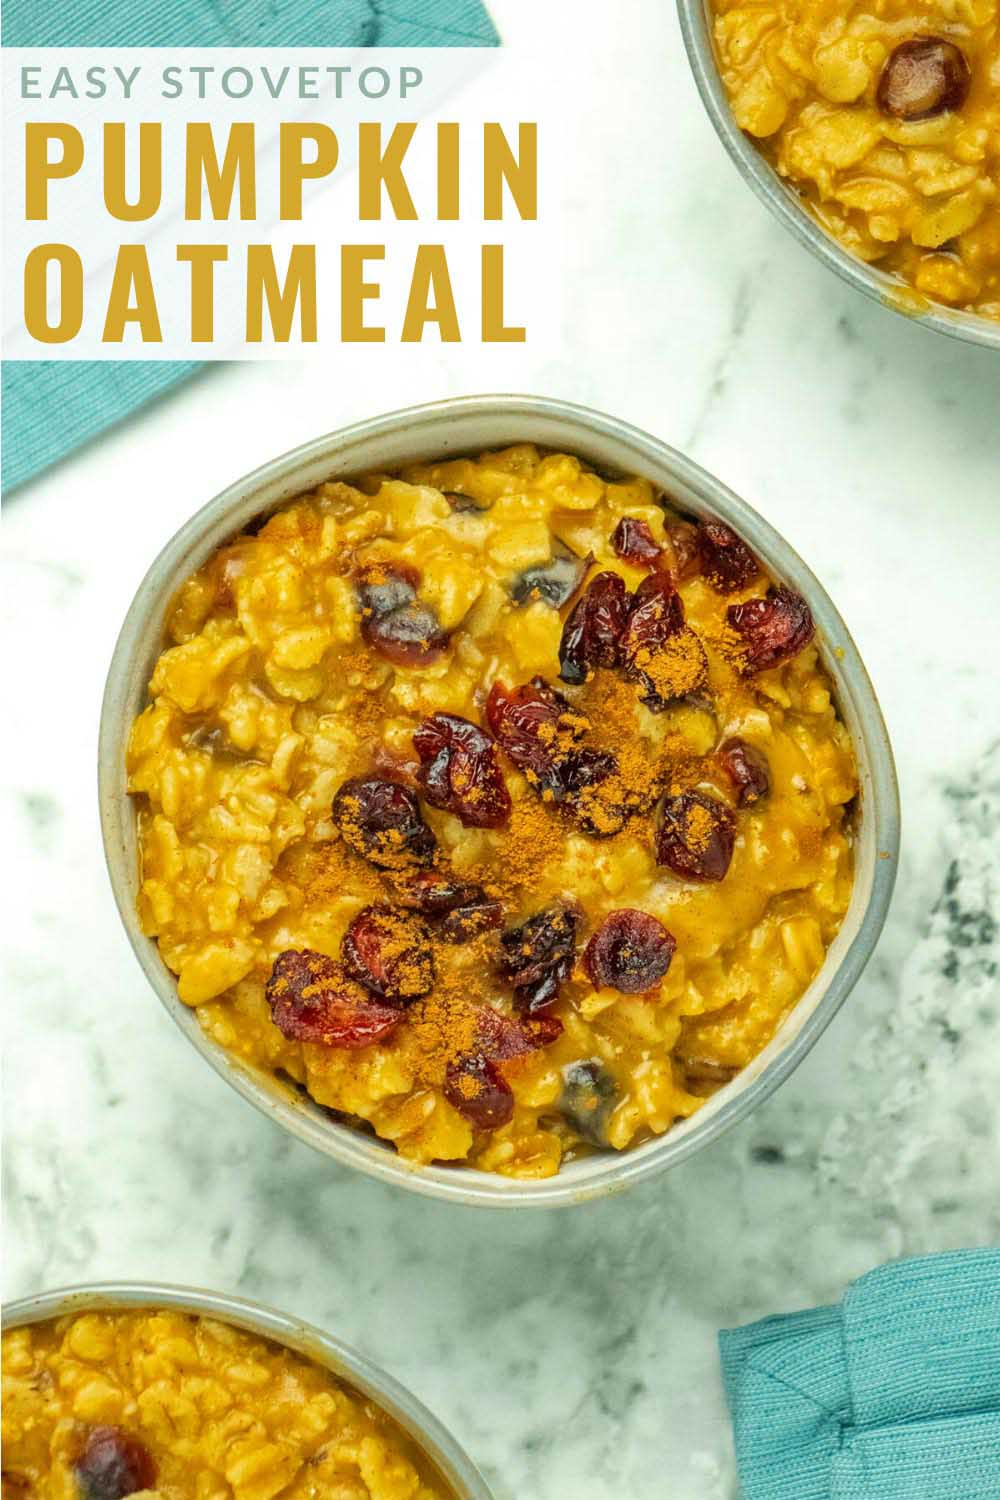 bowls of pumpkin oatmeal with cranberries and pumpkin spice, text overlay